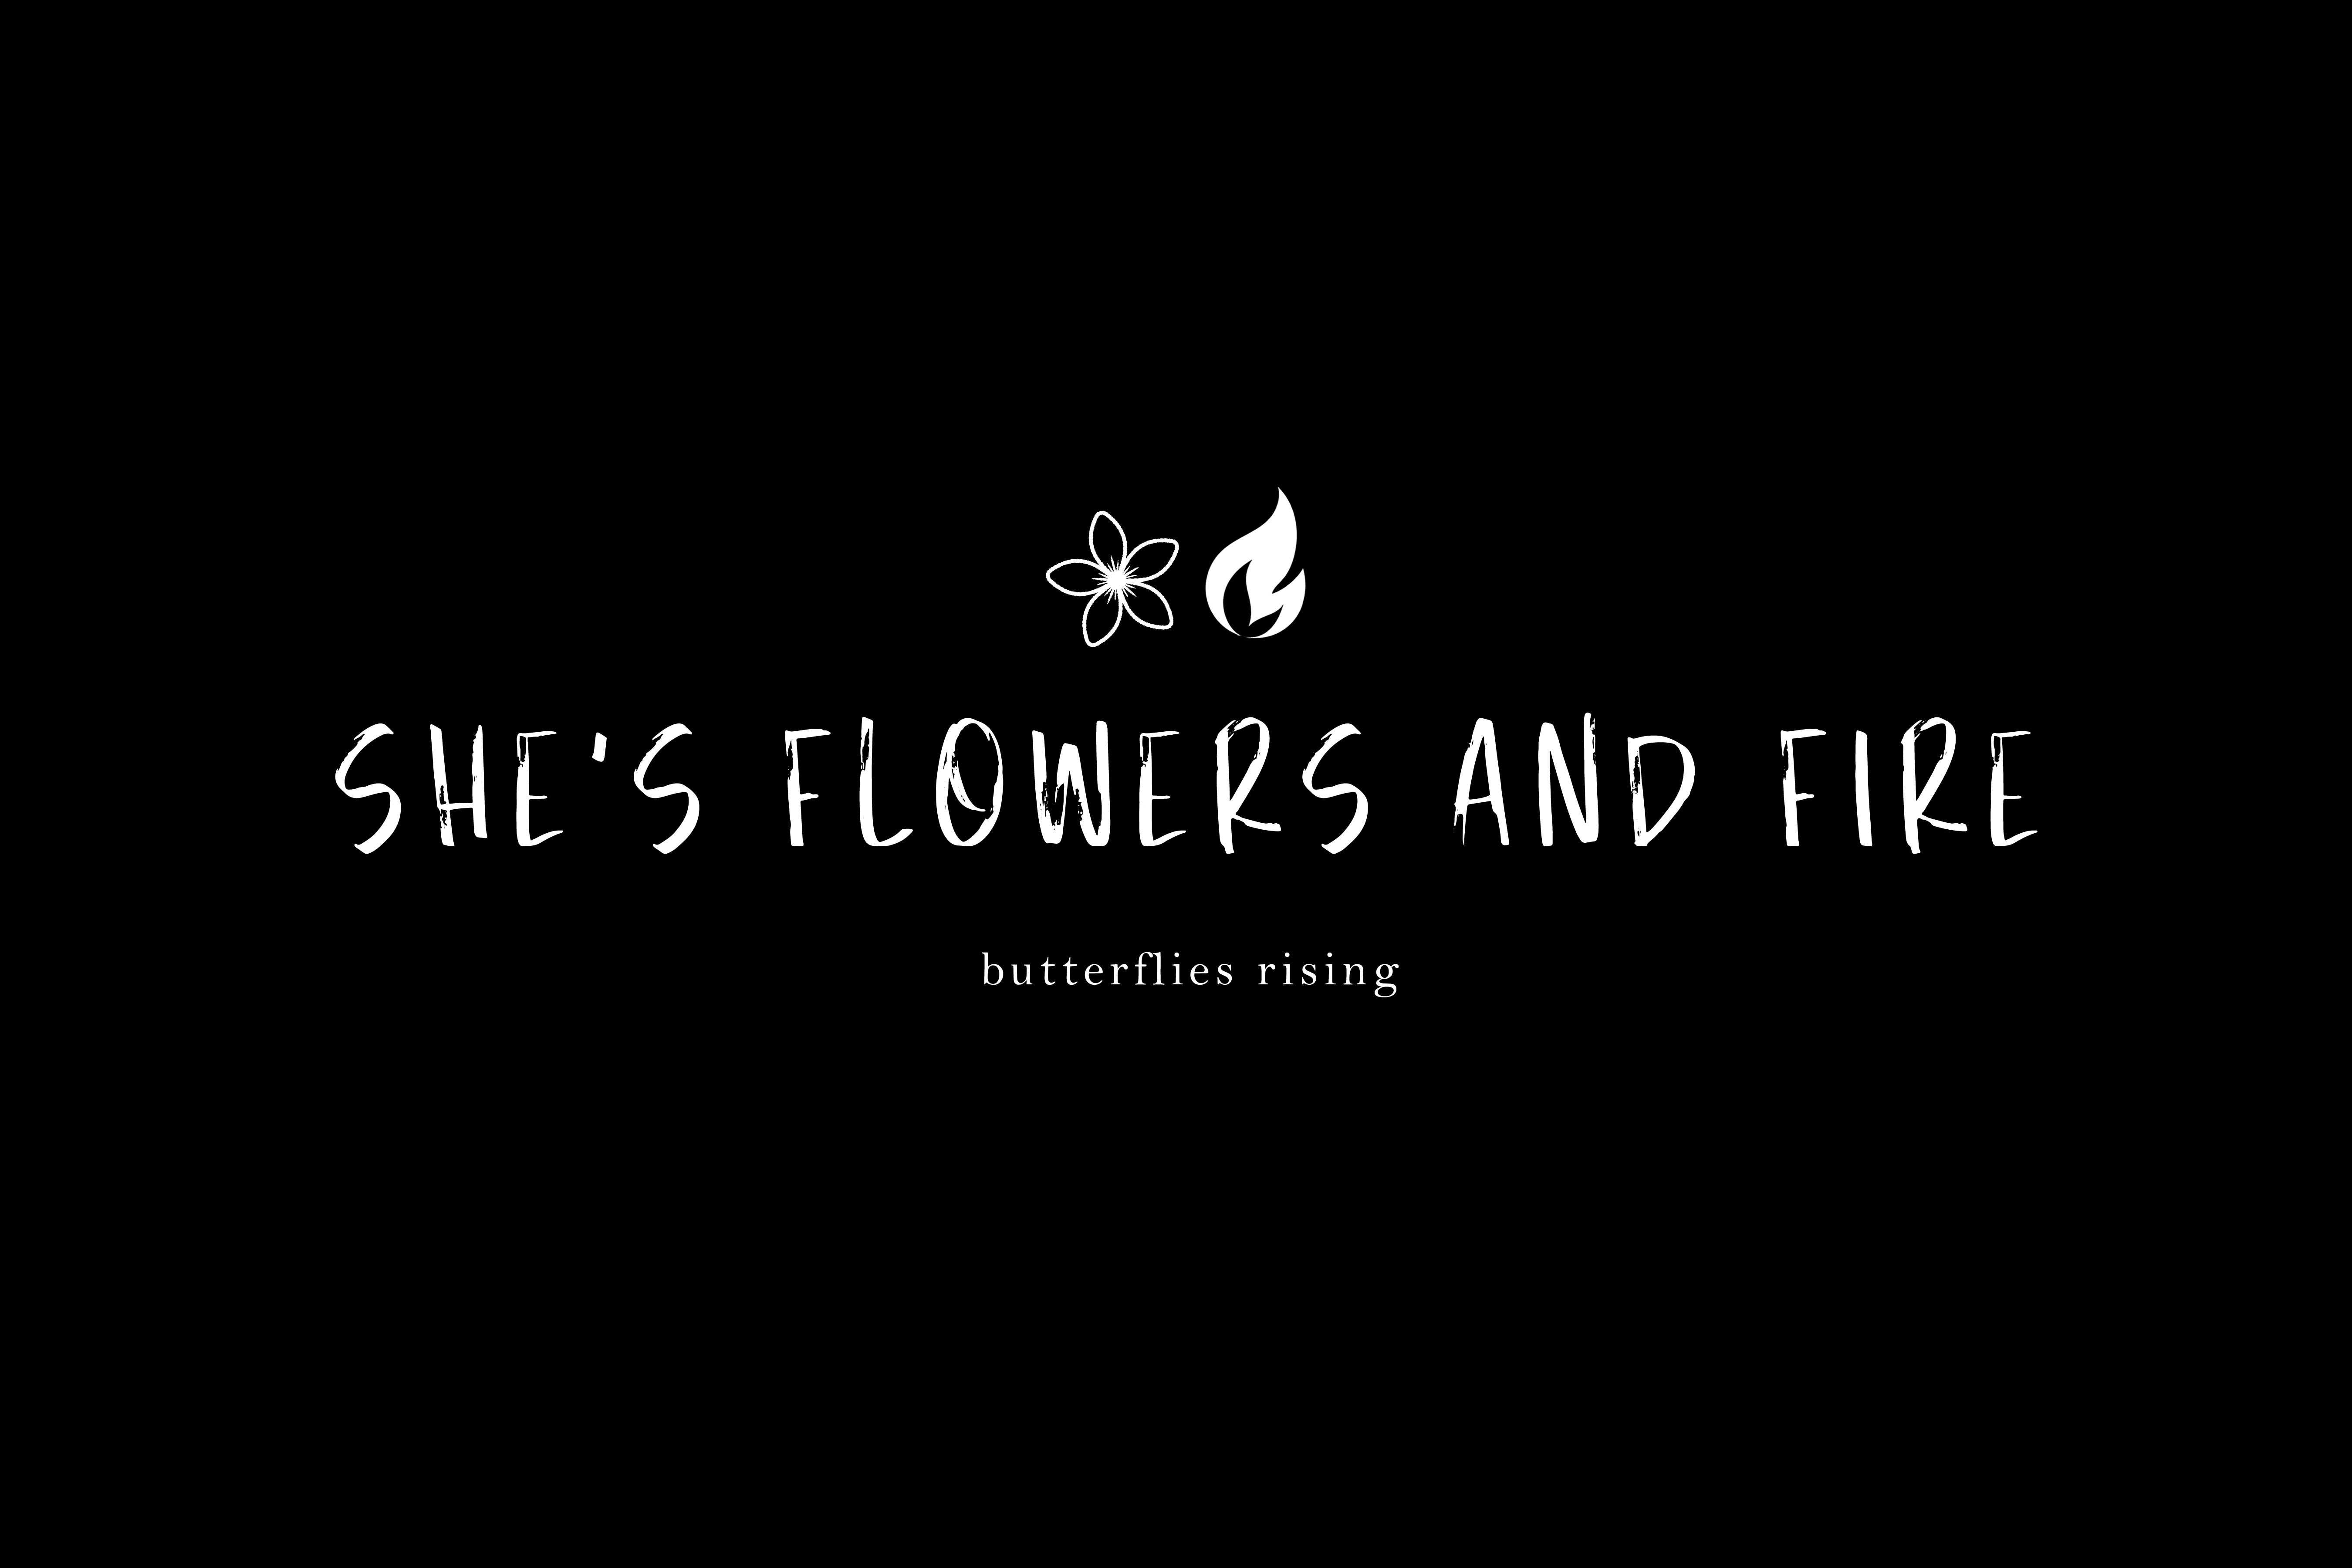 she's flowers and fire. - butterflies rising